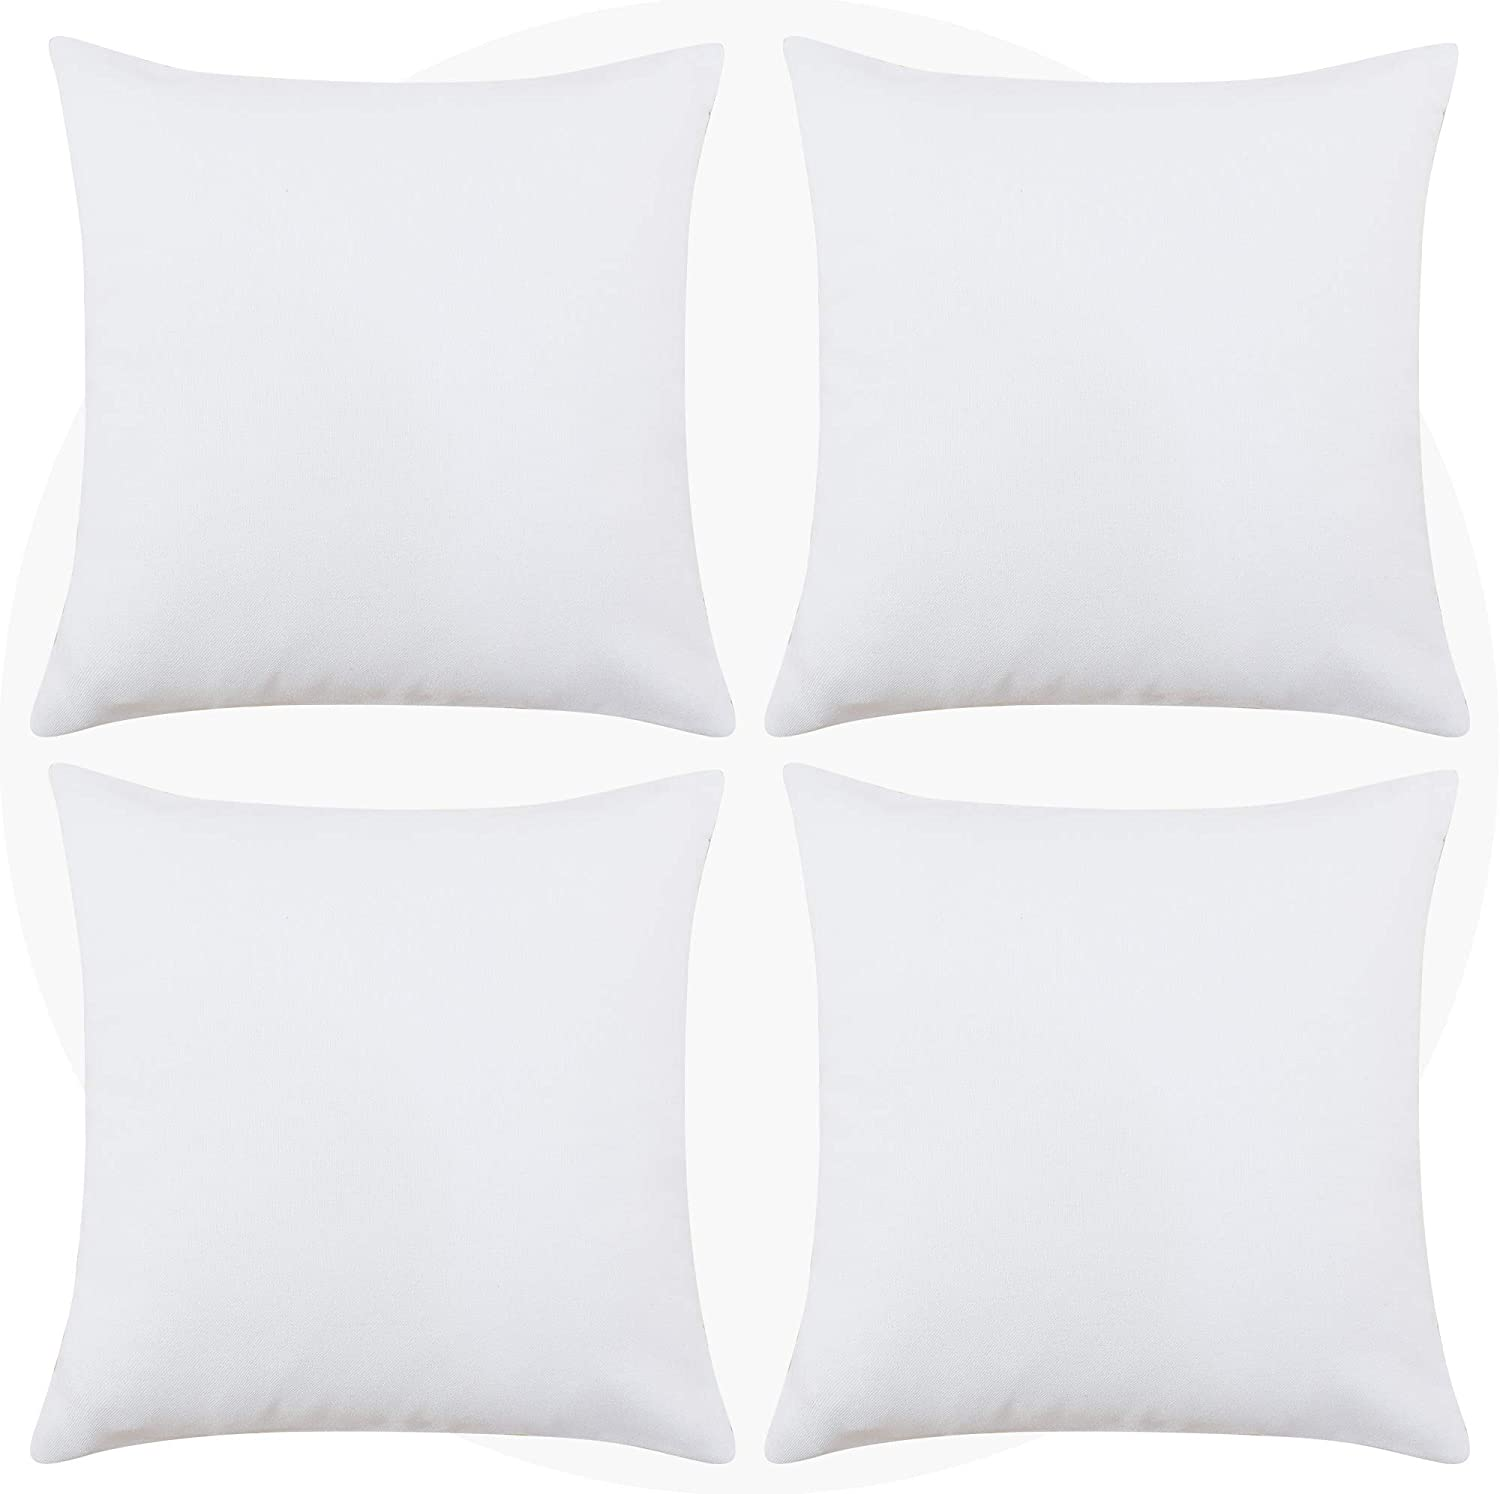 Deconovo Decorative Pillow Covers White Throw Cushion Covers Faux Linen Pillowcase for Living Room Throw Pillow 24 x 24 Inch Off White Set of 4 No Pillow Insert